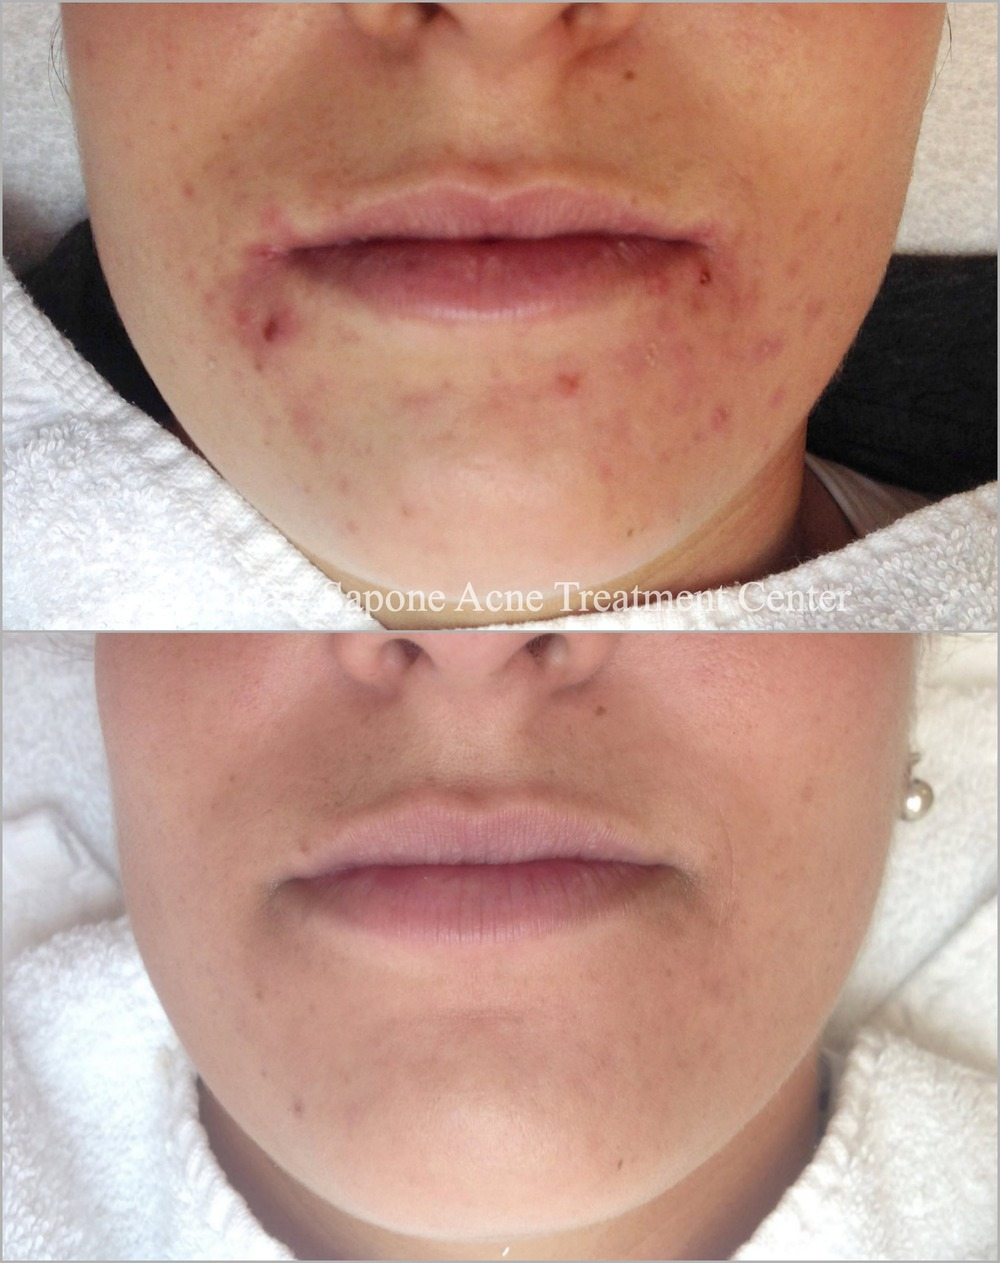 Clearing adult chin acne and redness | Acqua e Sapone Acne Treatment Center SF